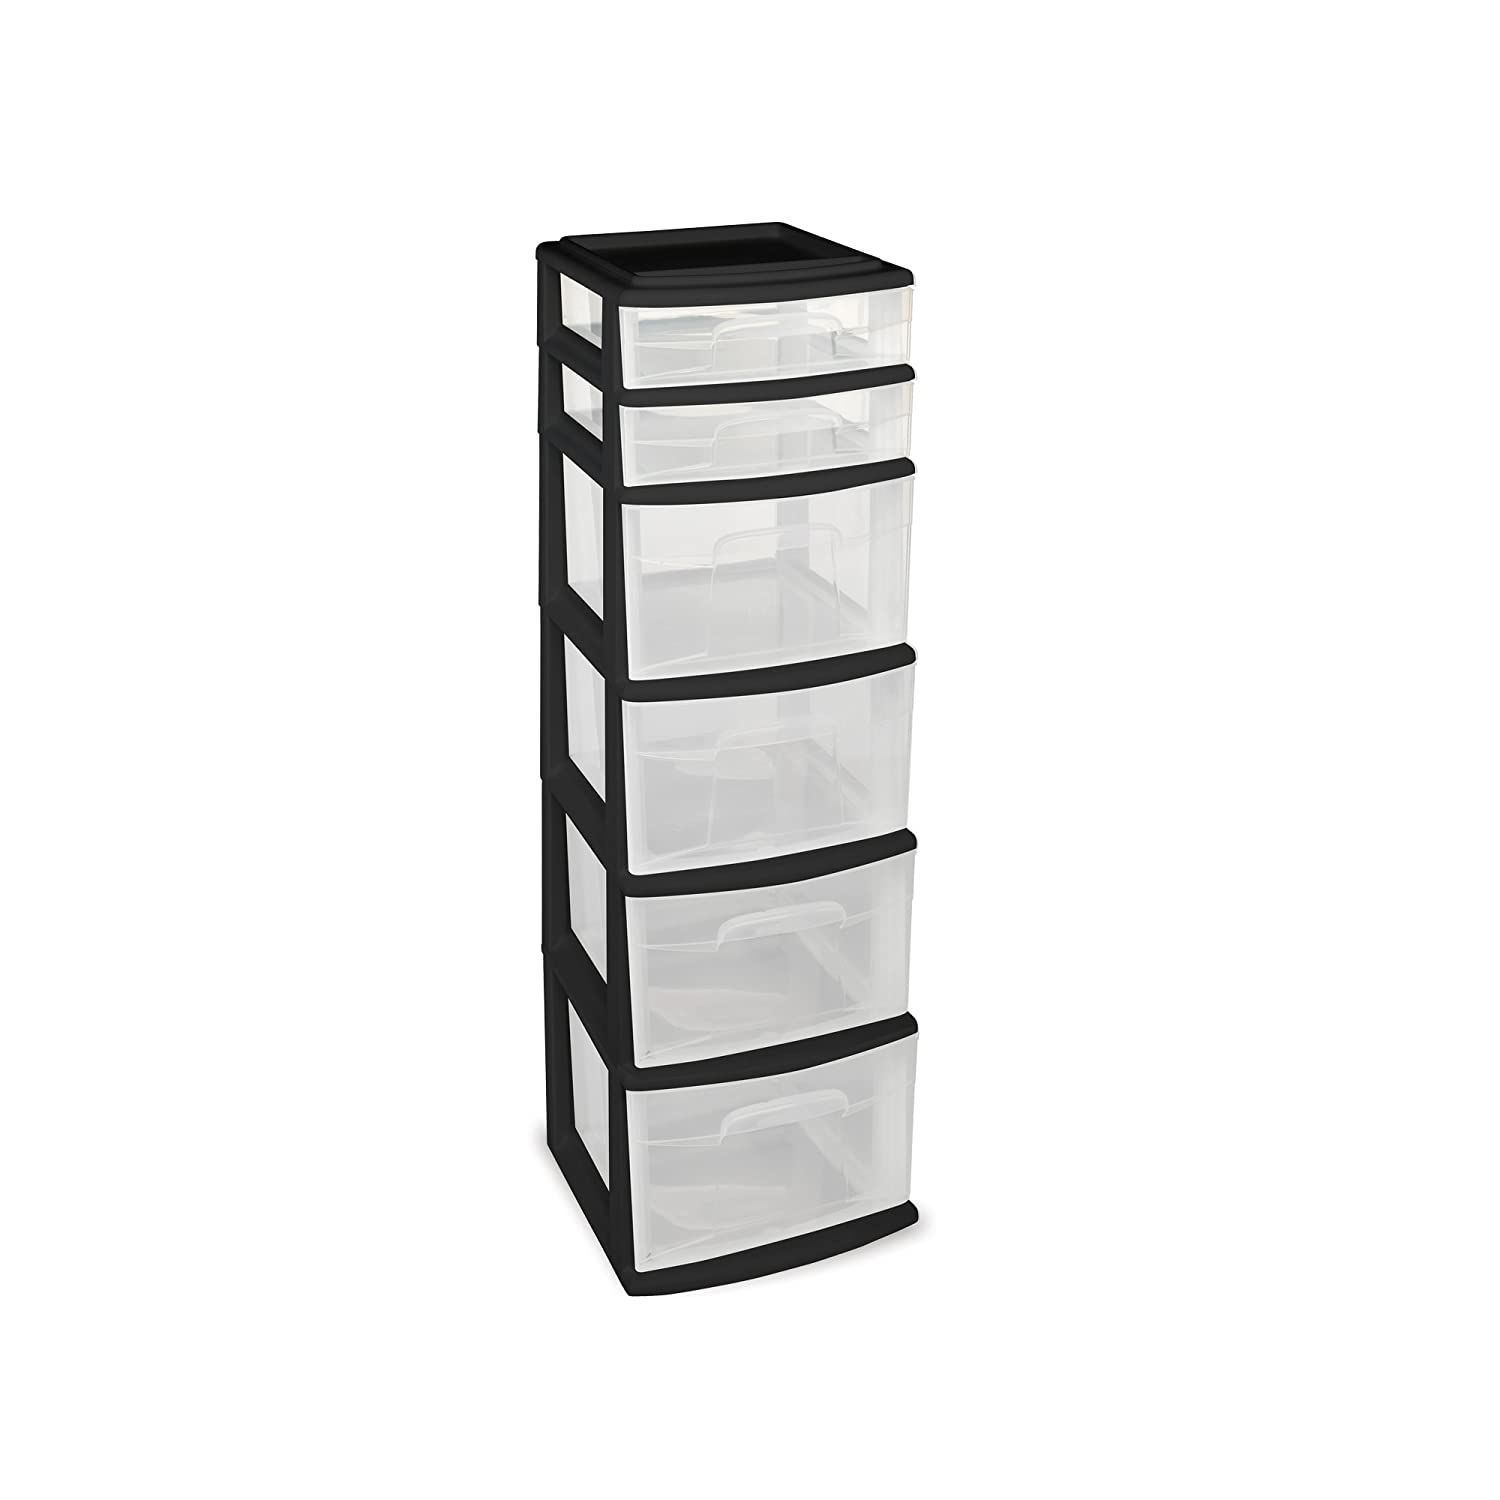 HOMZ Plastic 6 Drawer Medium Storage Tower, Black Frame, Clear Drawers, Set of 1